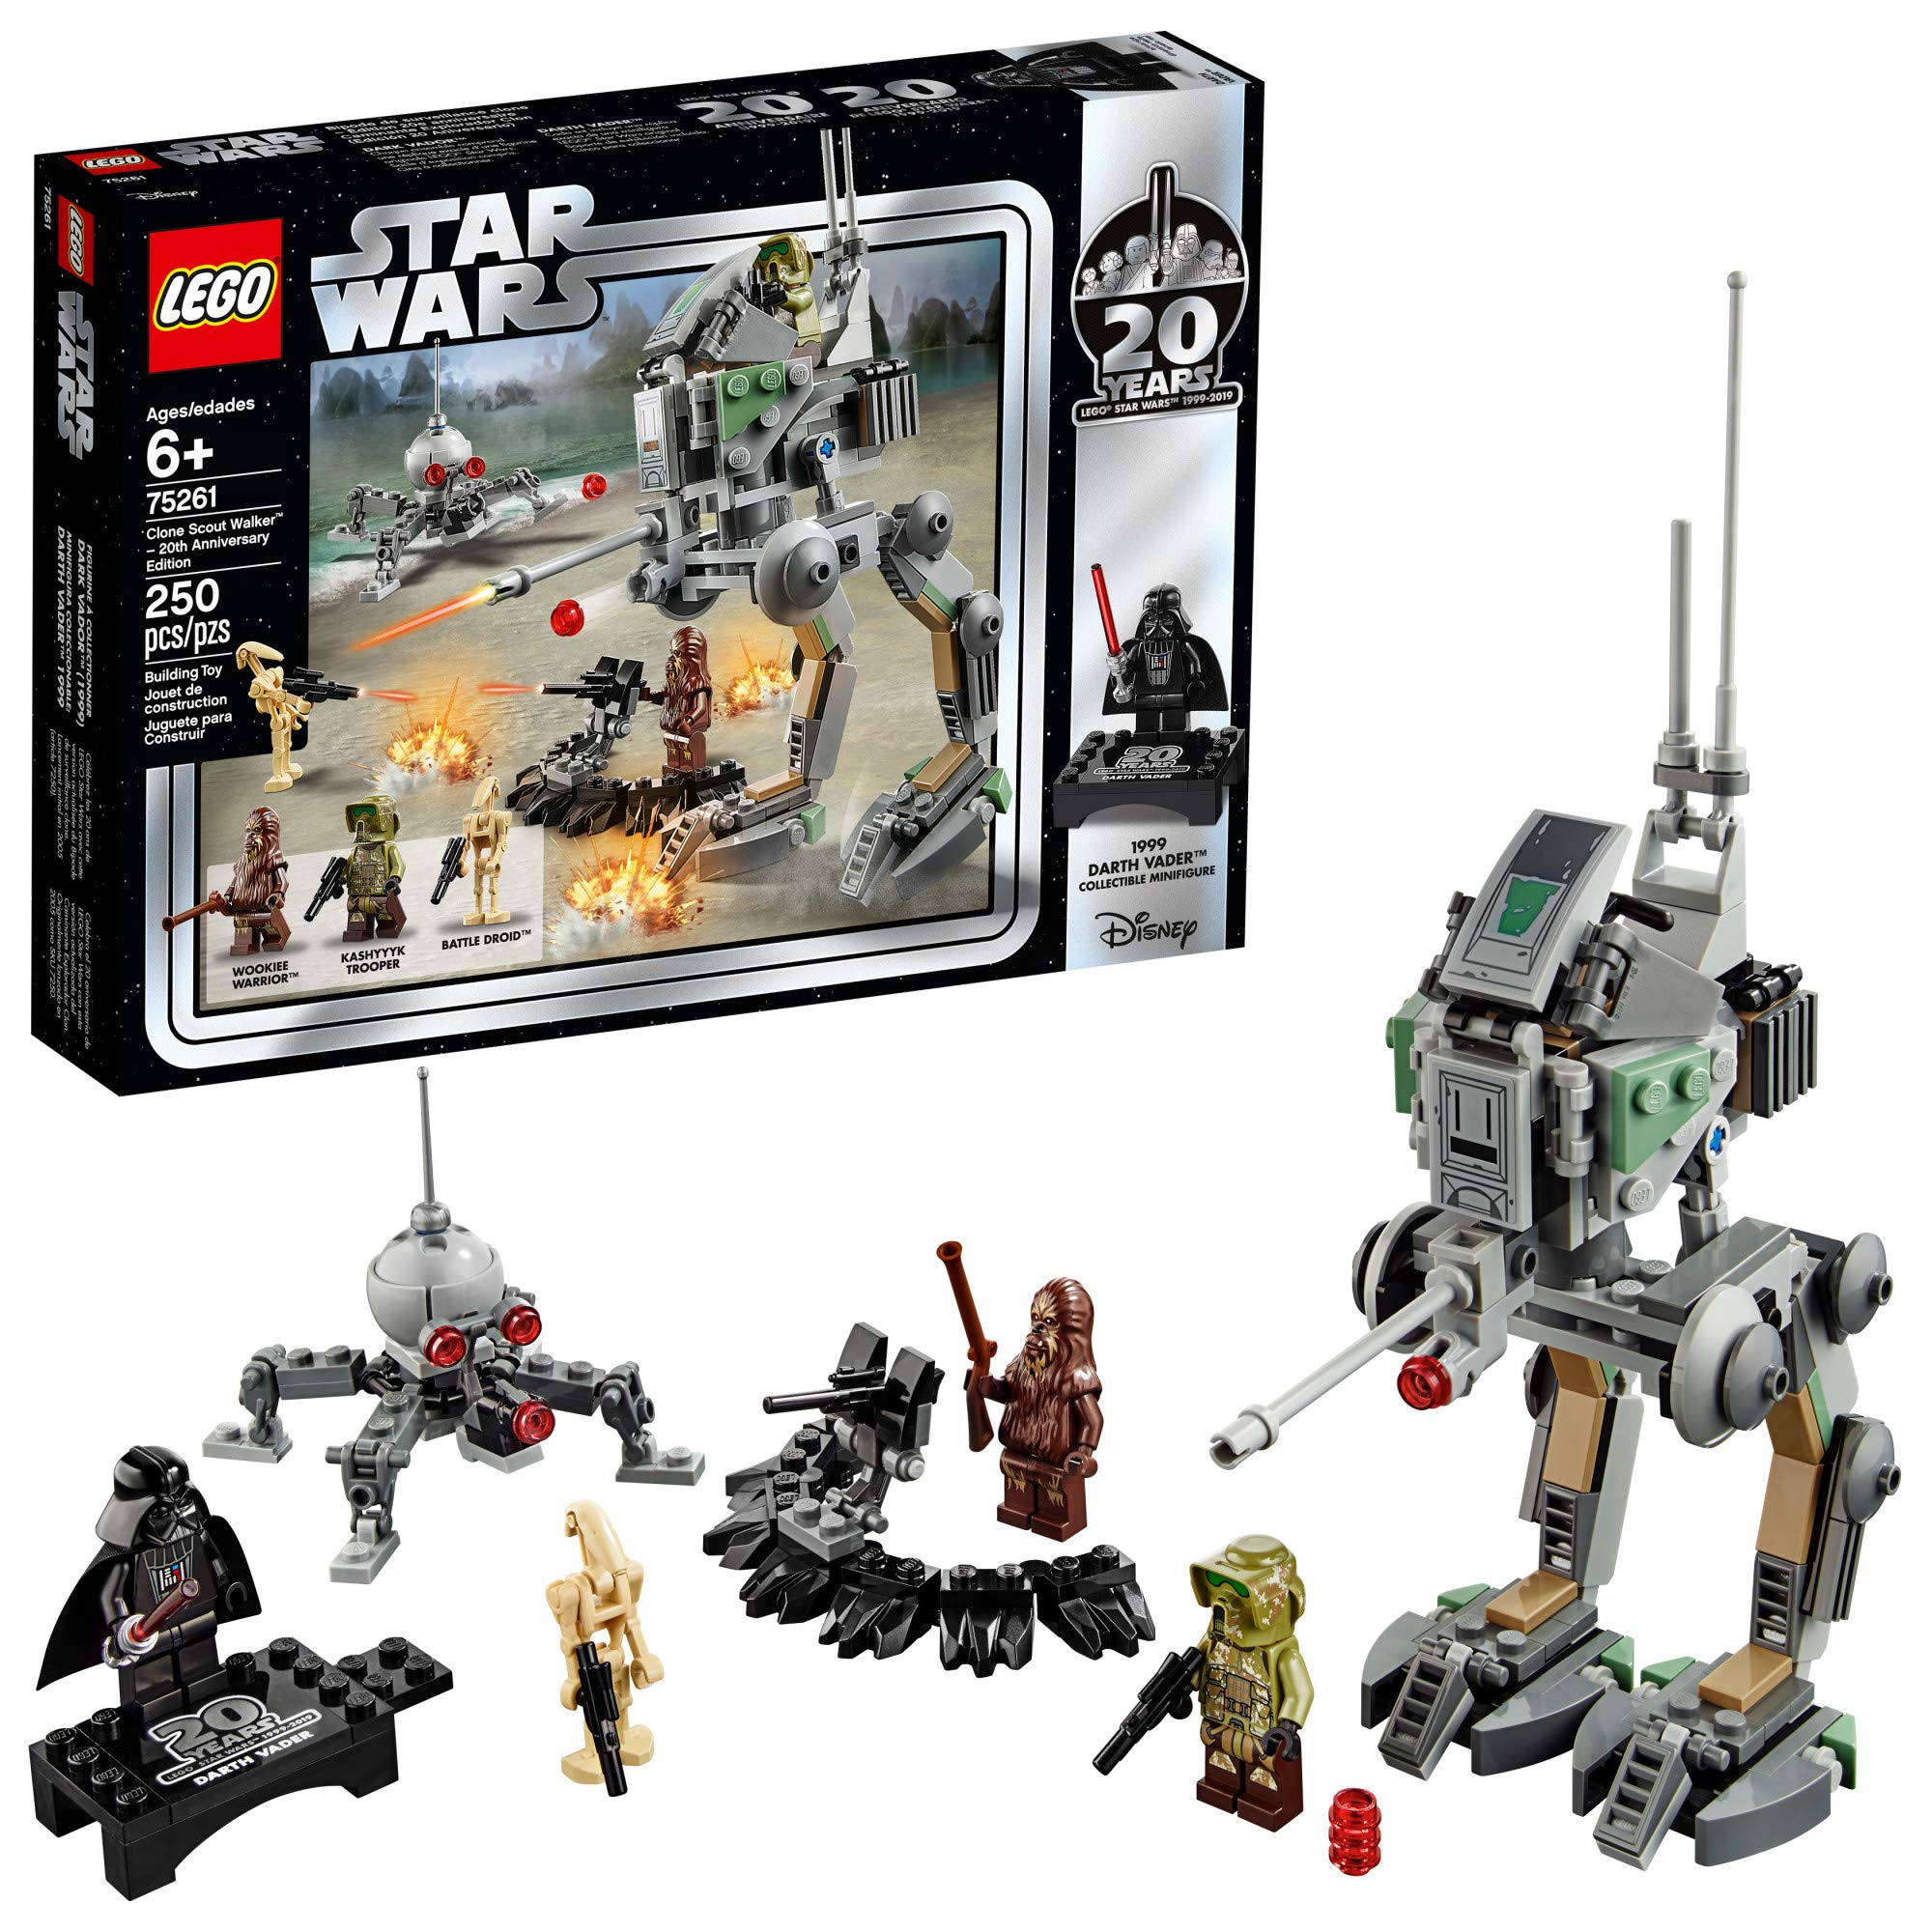 LEGO Star Wars Clone Scout Walker - 20th Anniversary Edition 75261 Building Kit, New 2019 (250 Pieces) by LEGO